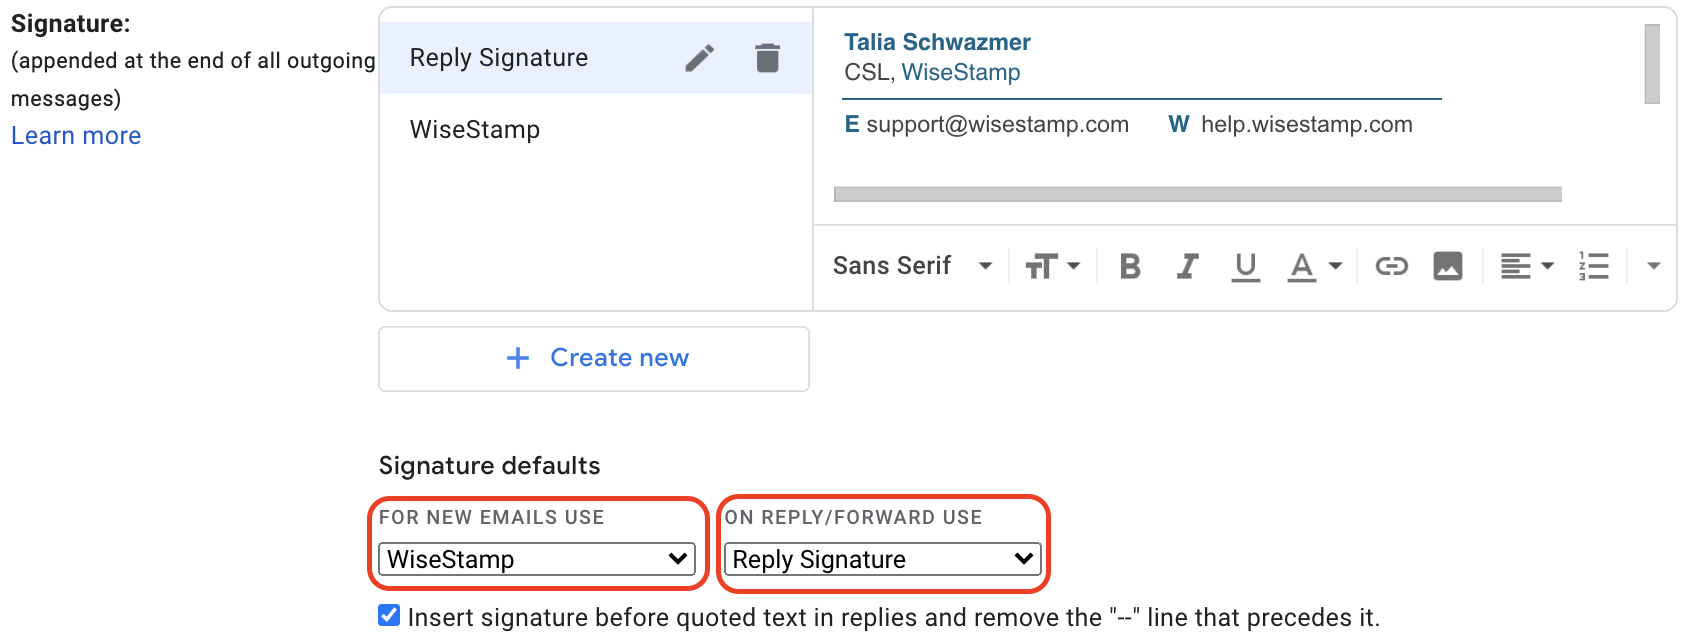 Screenshot of the Gmail signature settings with red boxes around the New Email settings and reply/forward settings